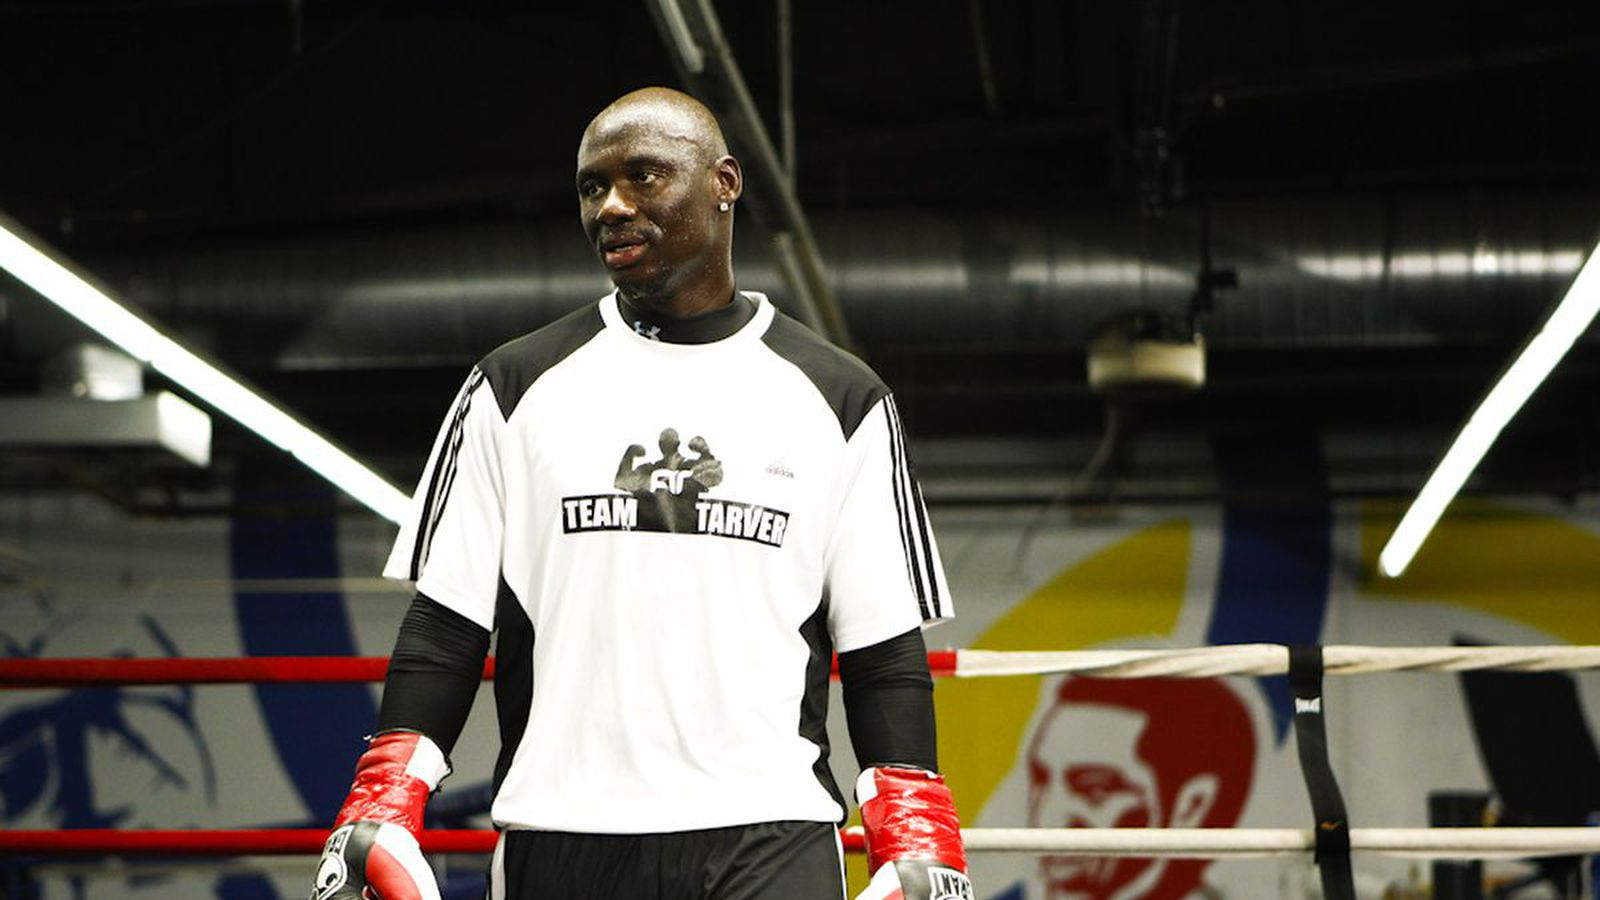 Boxing champion Antonio Tarver steps in as Blackzilians ...